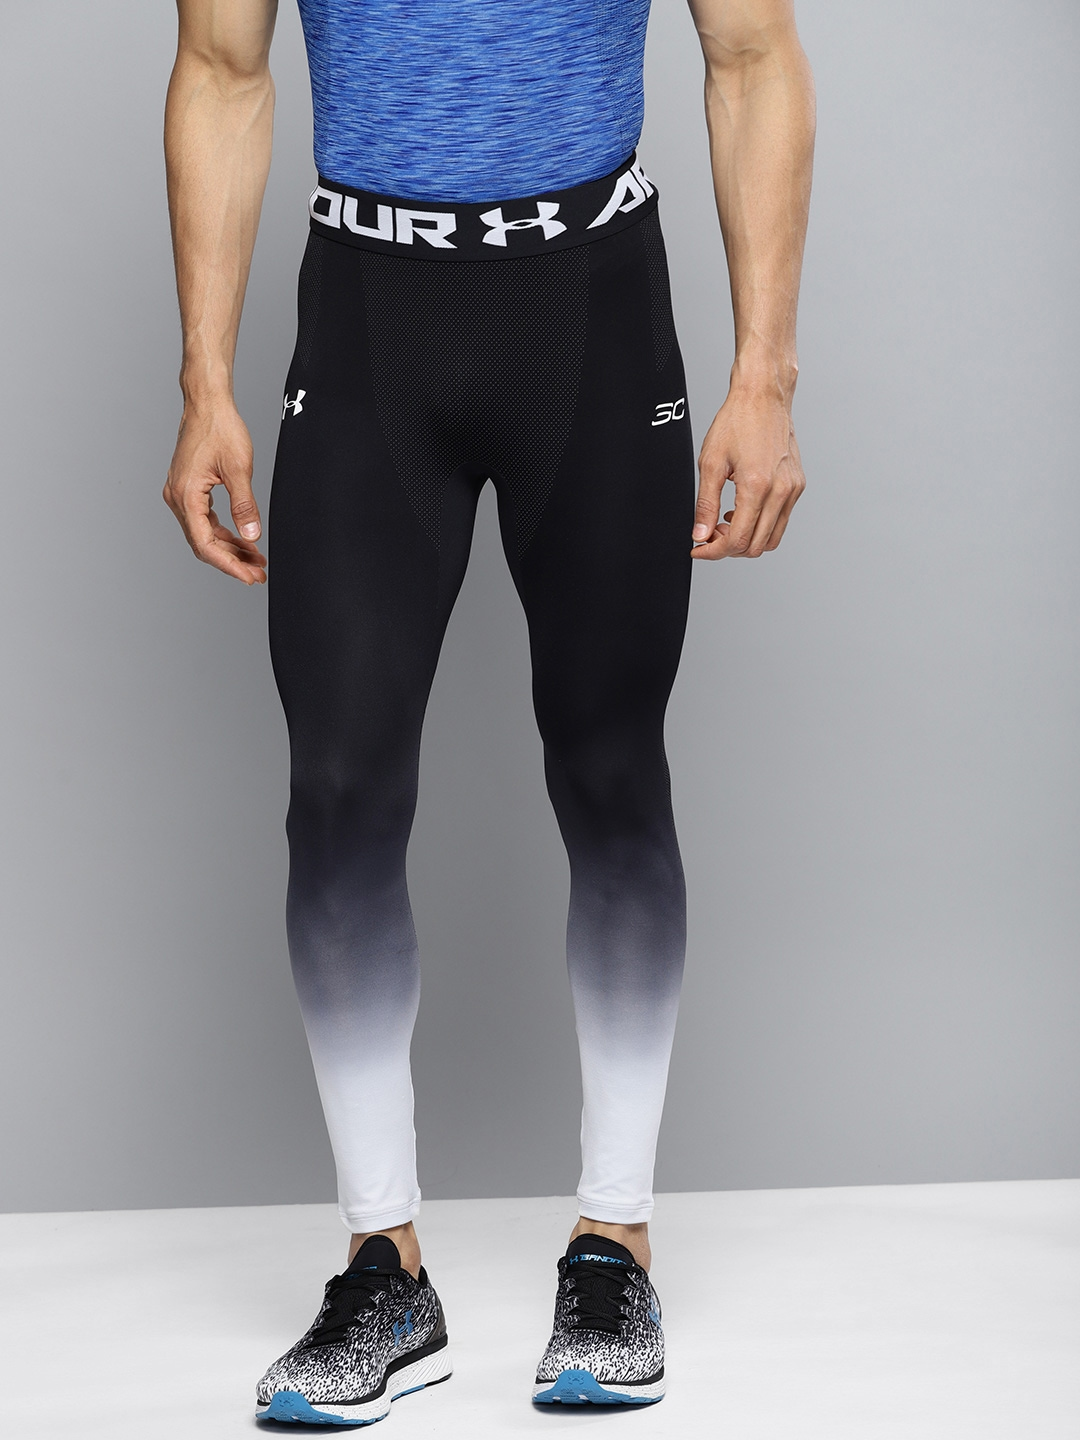 b523134e41 UNDER ARMOUR Stephen Curry 30 Men Black & White Ombre Dyed Seamless  Basketball Tights